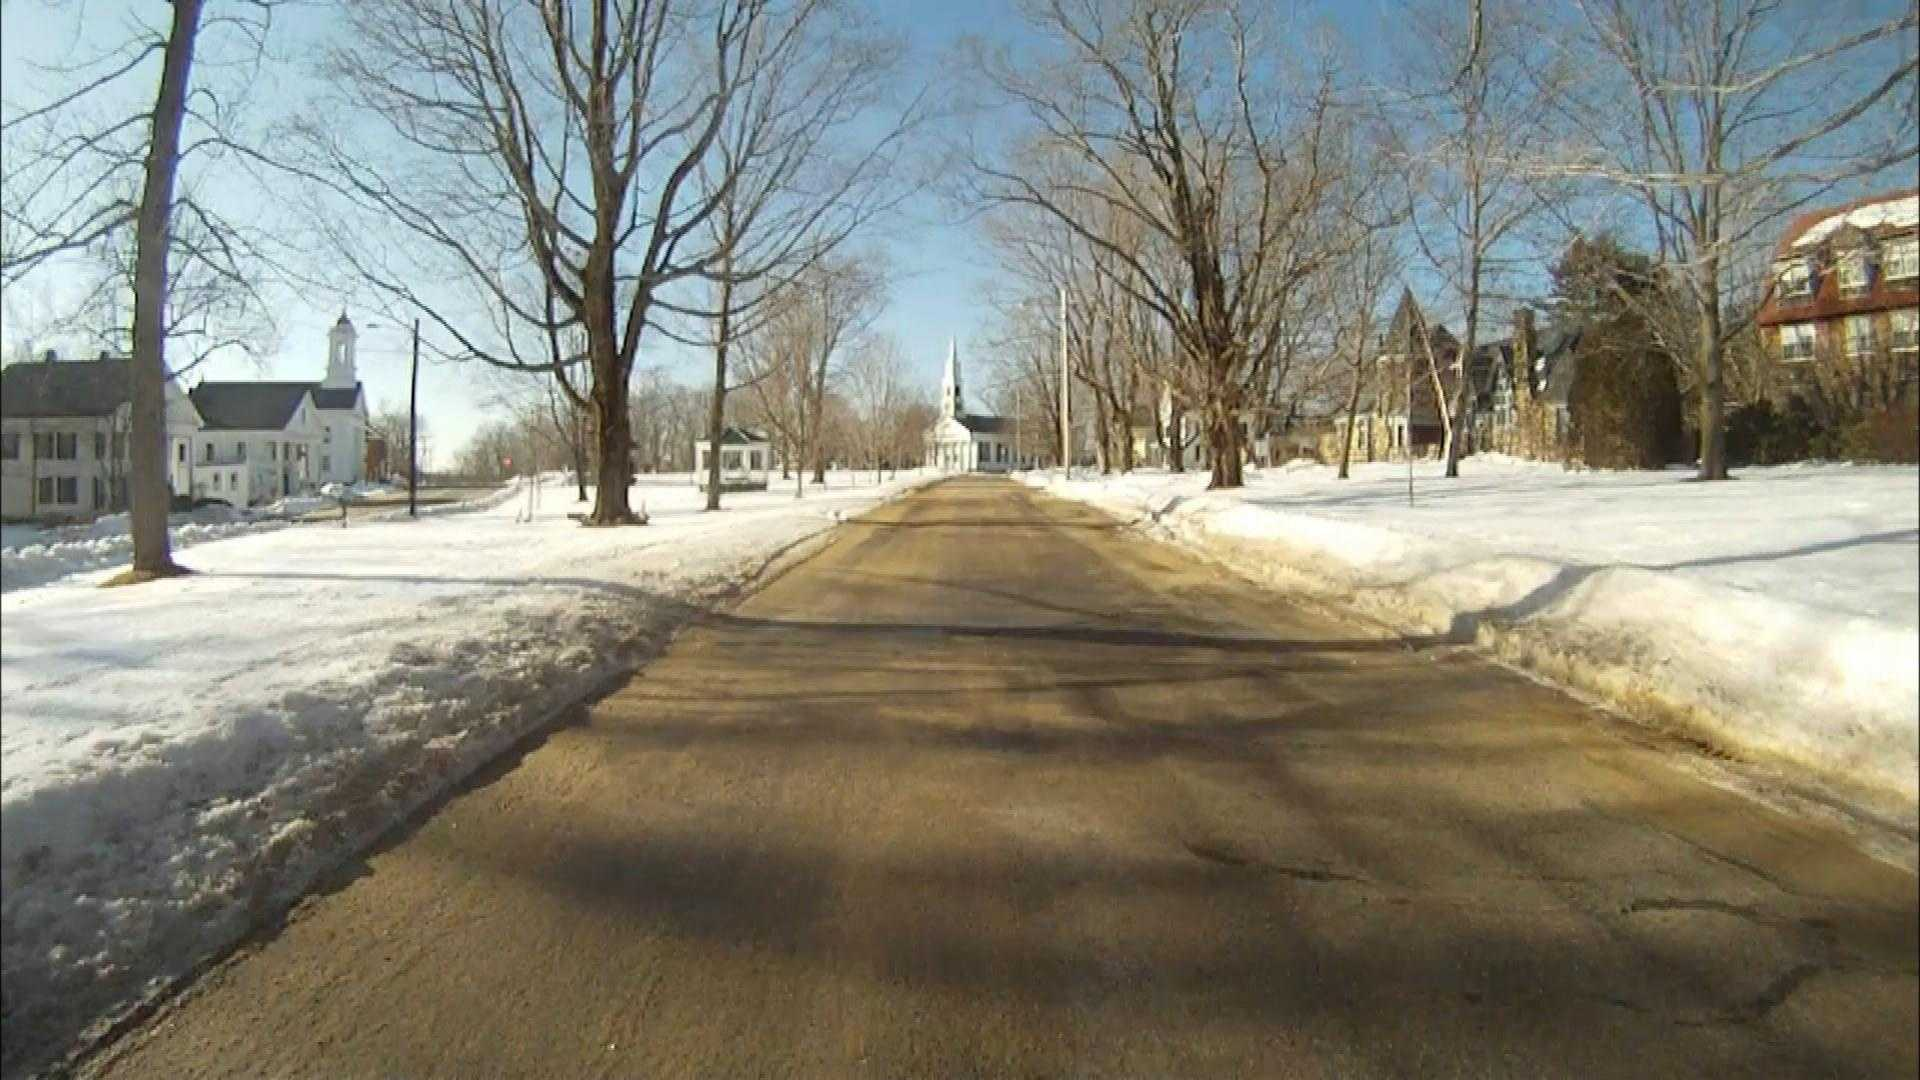 Friday, February 7: Main Streets and Back Roads: Petersham, Mass.